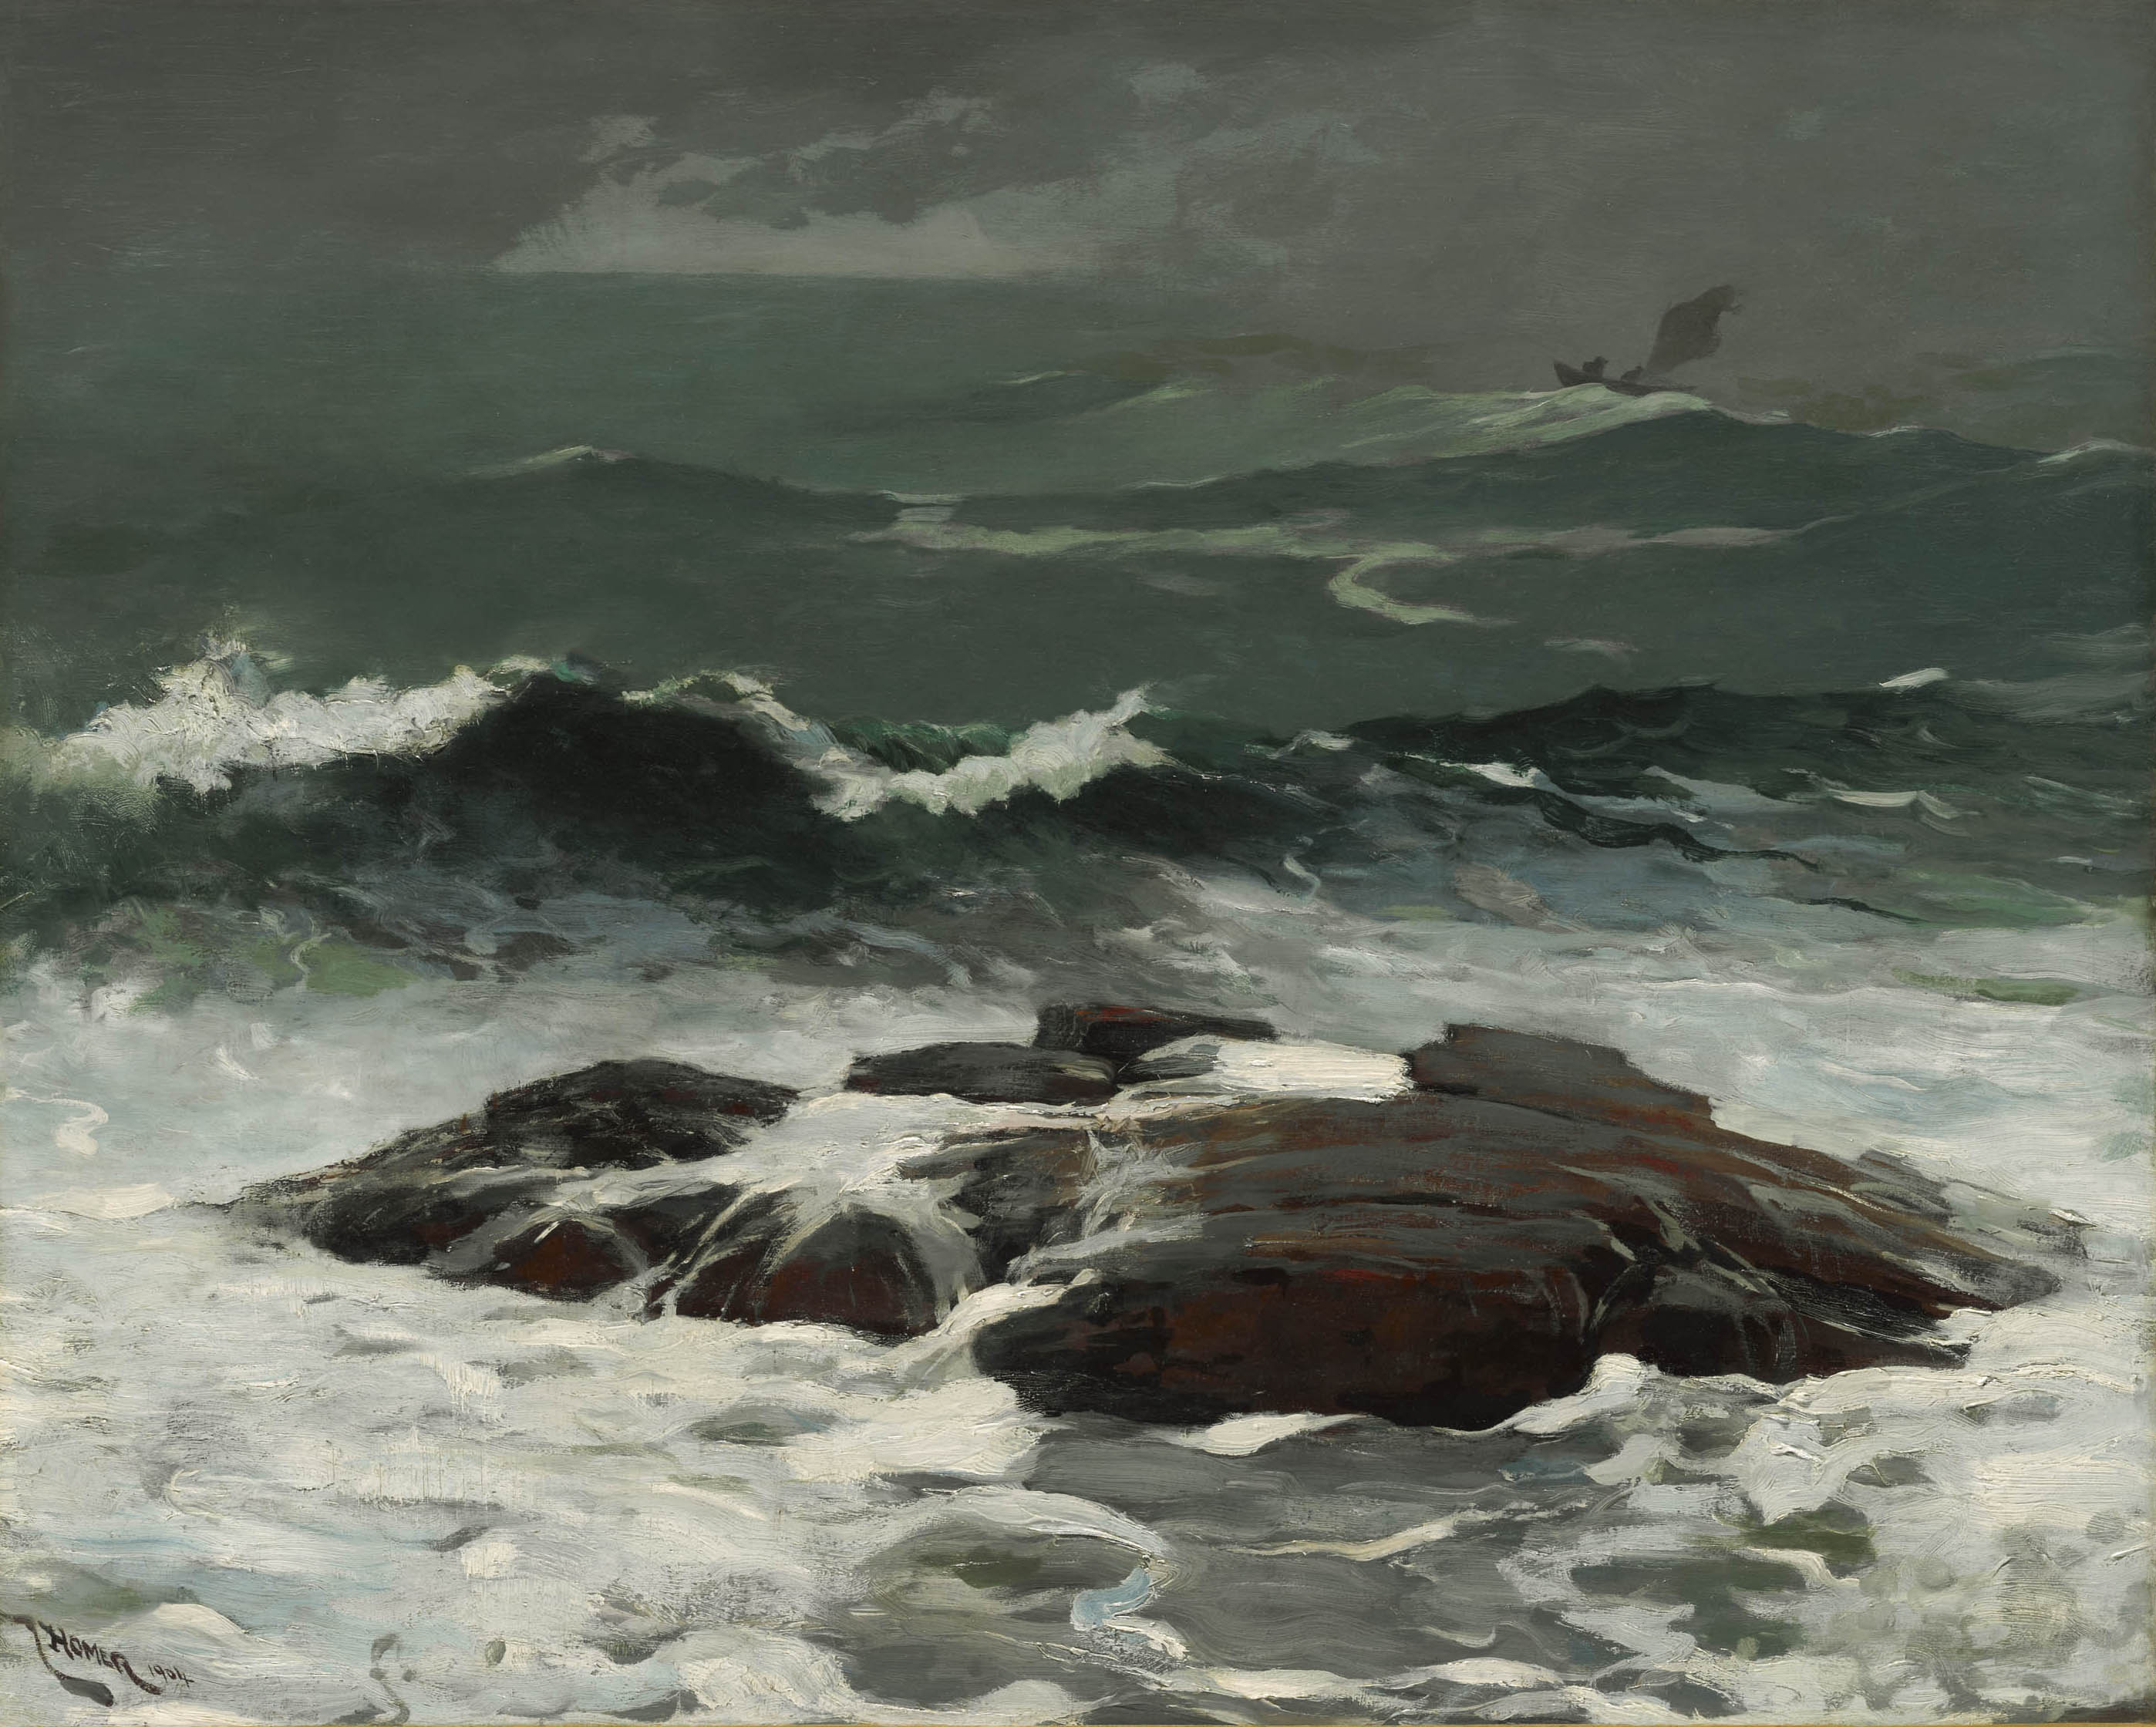 Winslow Homer (American, 1836–1910), Summer Squall, 1904. Oil on canvas, 24 1/4 x 30 1/4 in. (61.6 x 76.8 cm). Sterling and Francine Clark Art Institute, Williamstown, Massachusetts, 1955.8